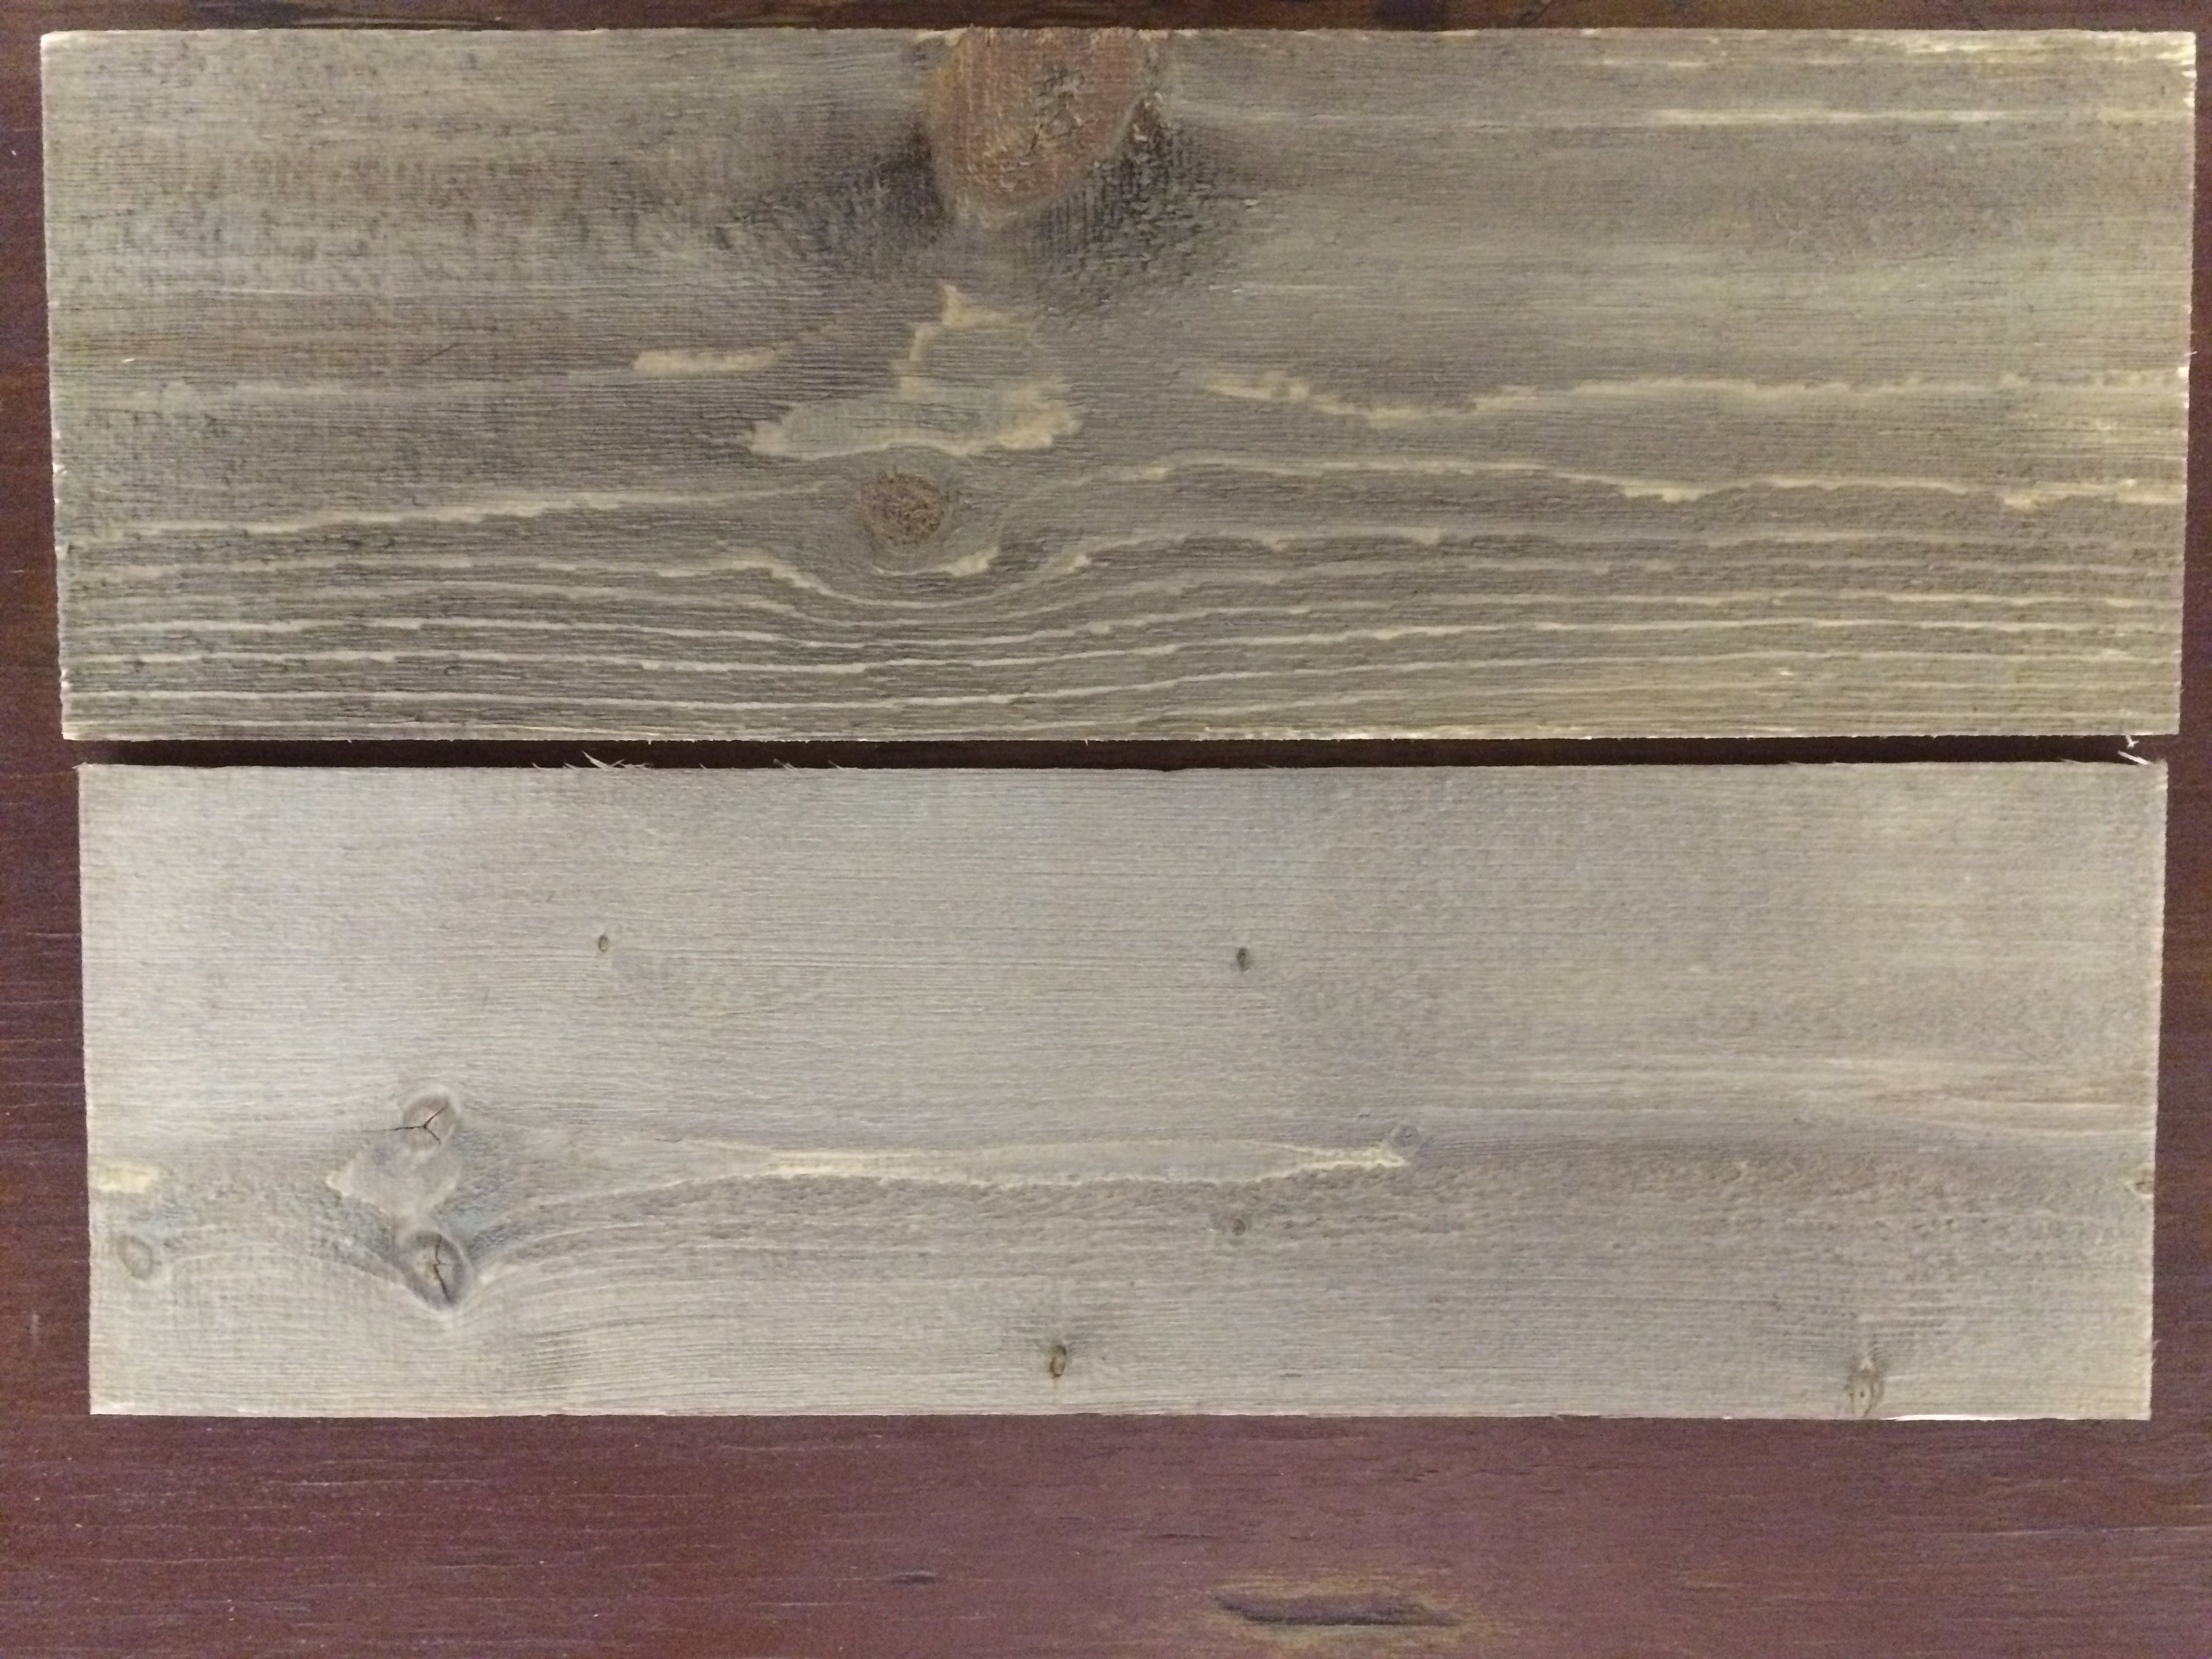 Once the wood has dried you have a very nice reclaimed barn wood imitation